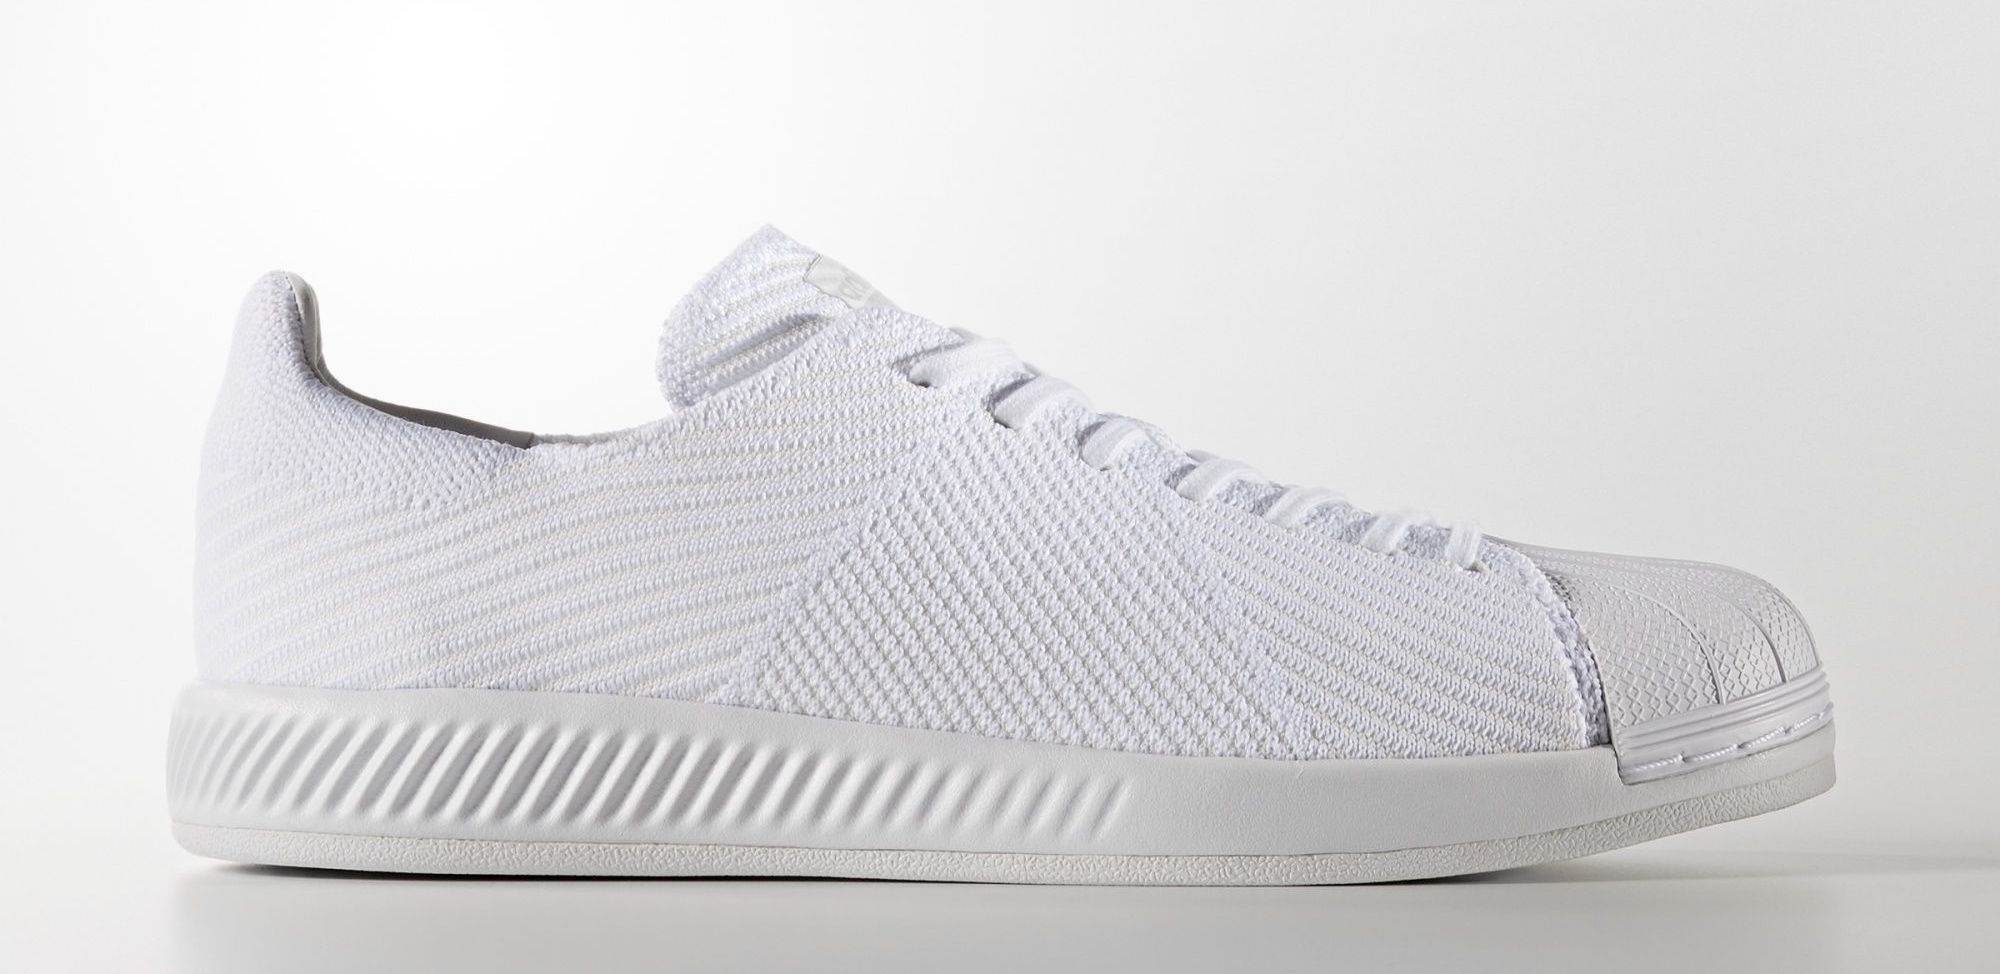 7f38d19e4 The adidas Superstar to Feature Bounce and Primeknit - Ostun - Thời ...